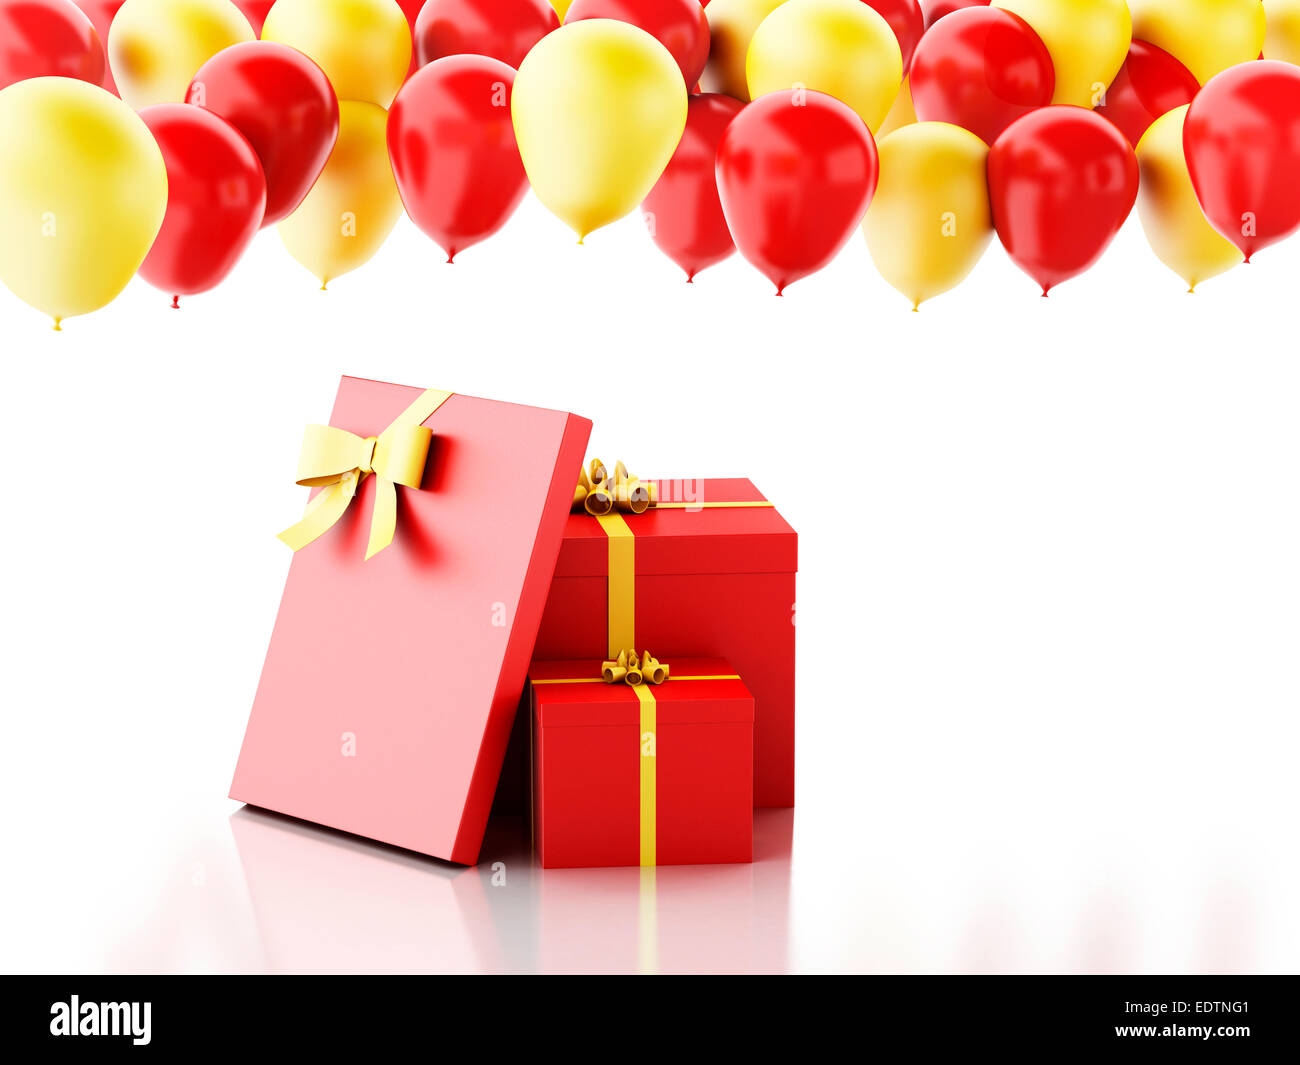 Red Happy Birthday Balloons Party Celebration Gift Wrapping Bday Present